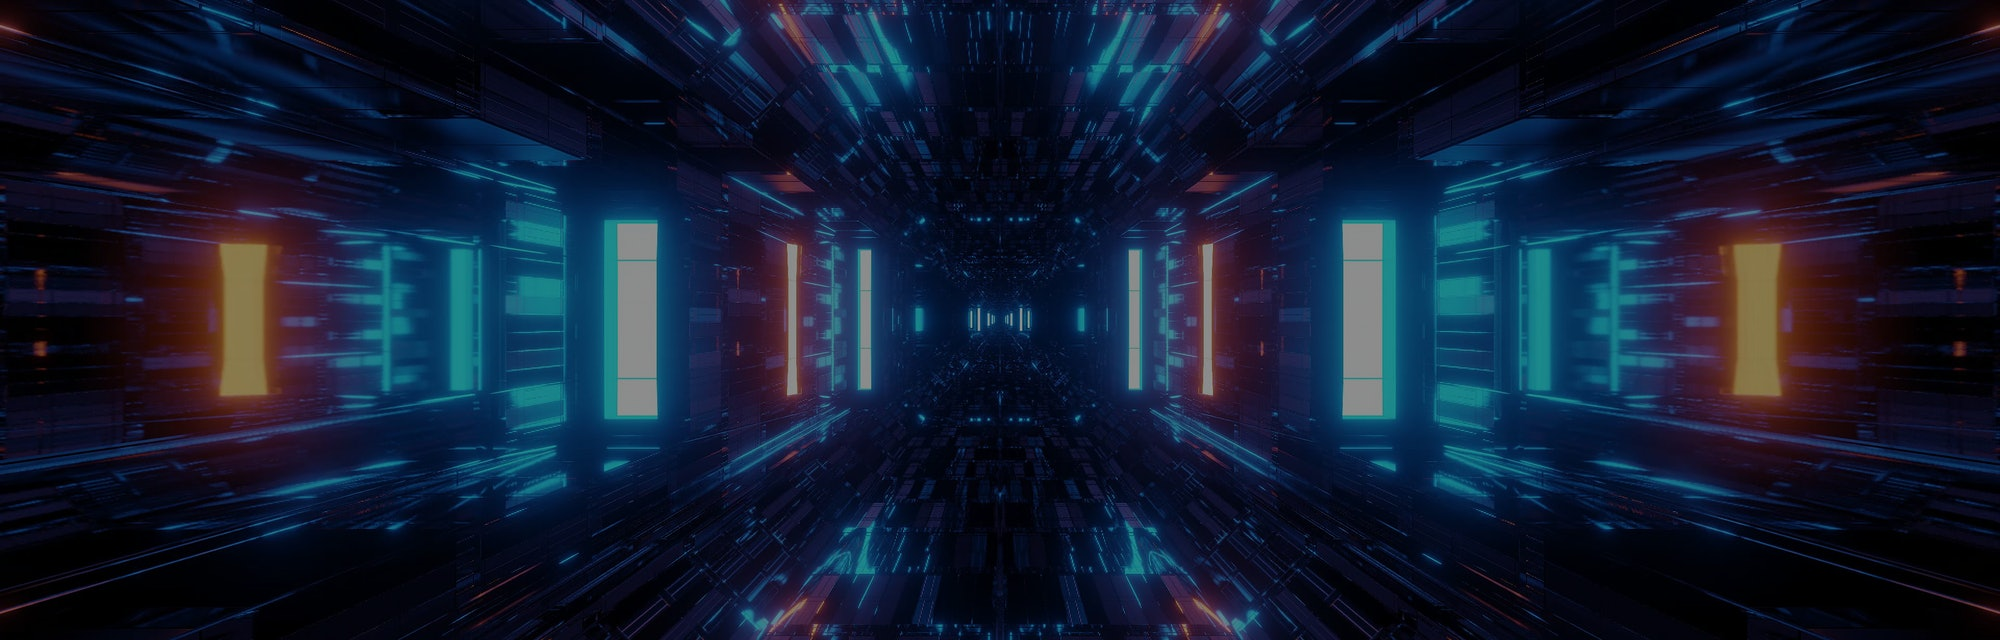 beautiful futuristic scifi space ship tunnel background 3d illustration 3d rendering loop endless looping